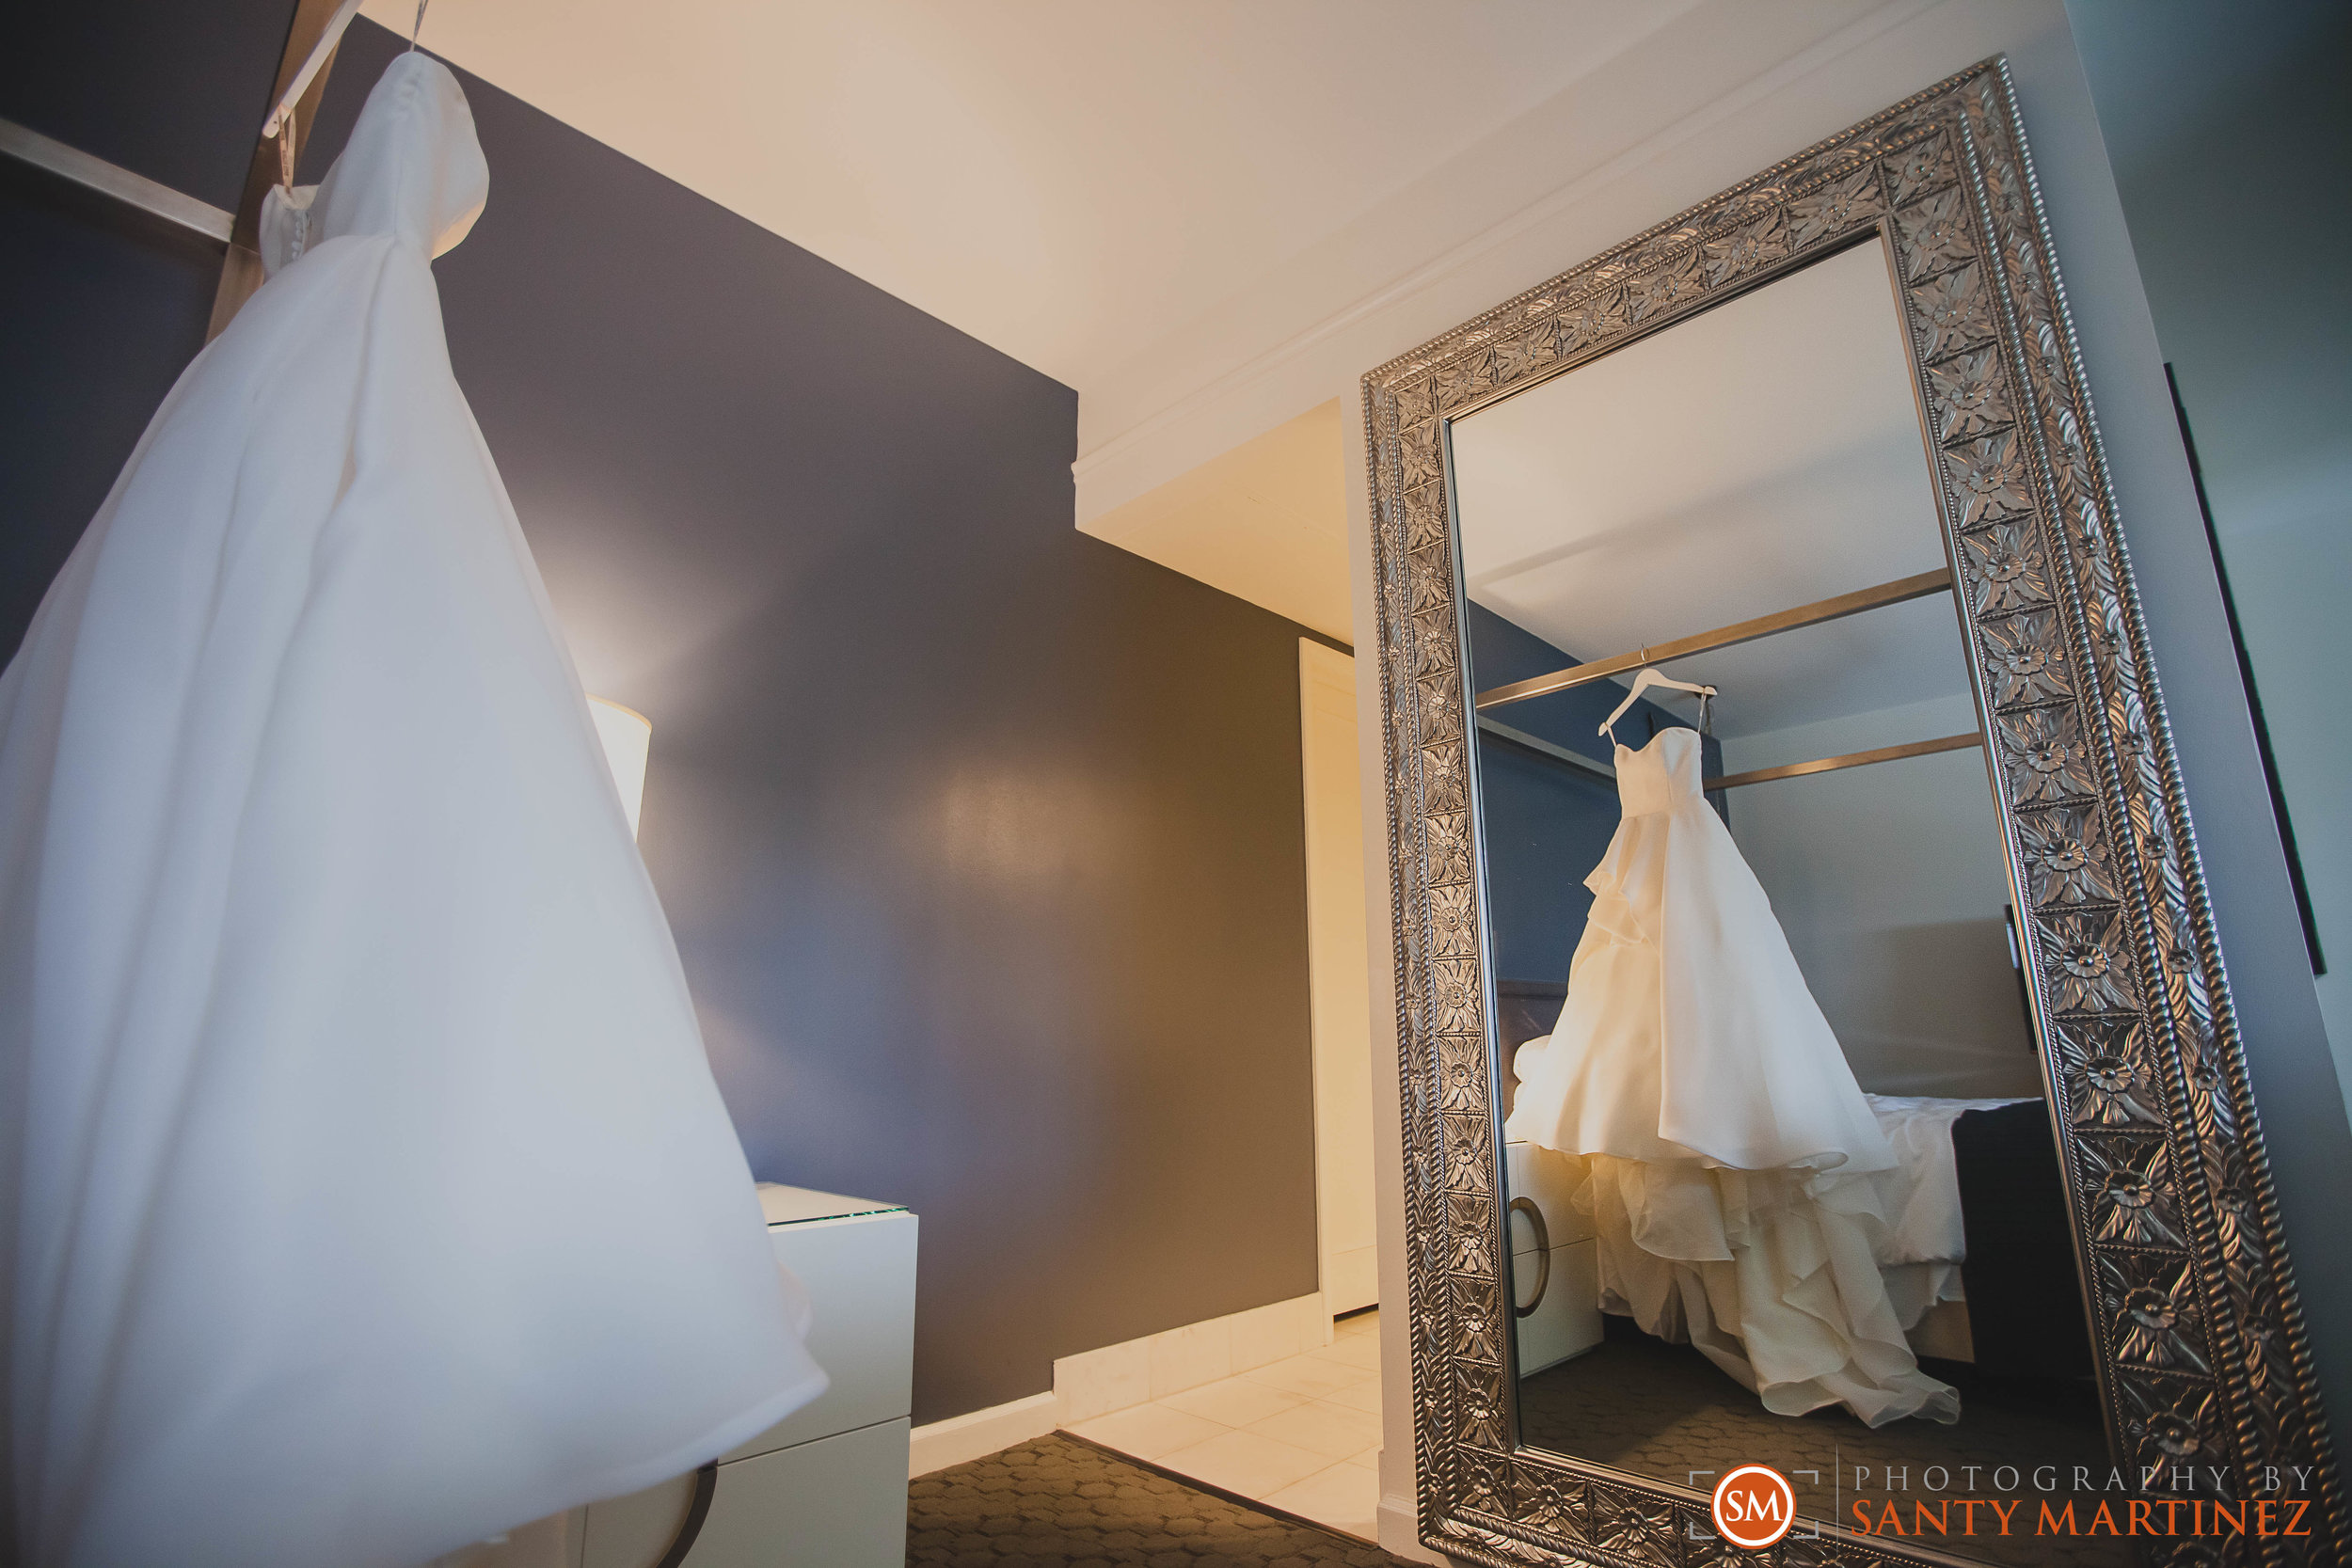 Wedding - Hotel Colonnade Coral Gables - Santy Martinez Photography.jpg